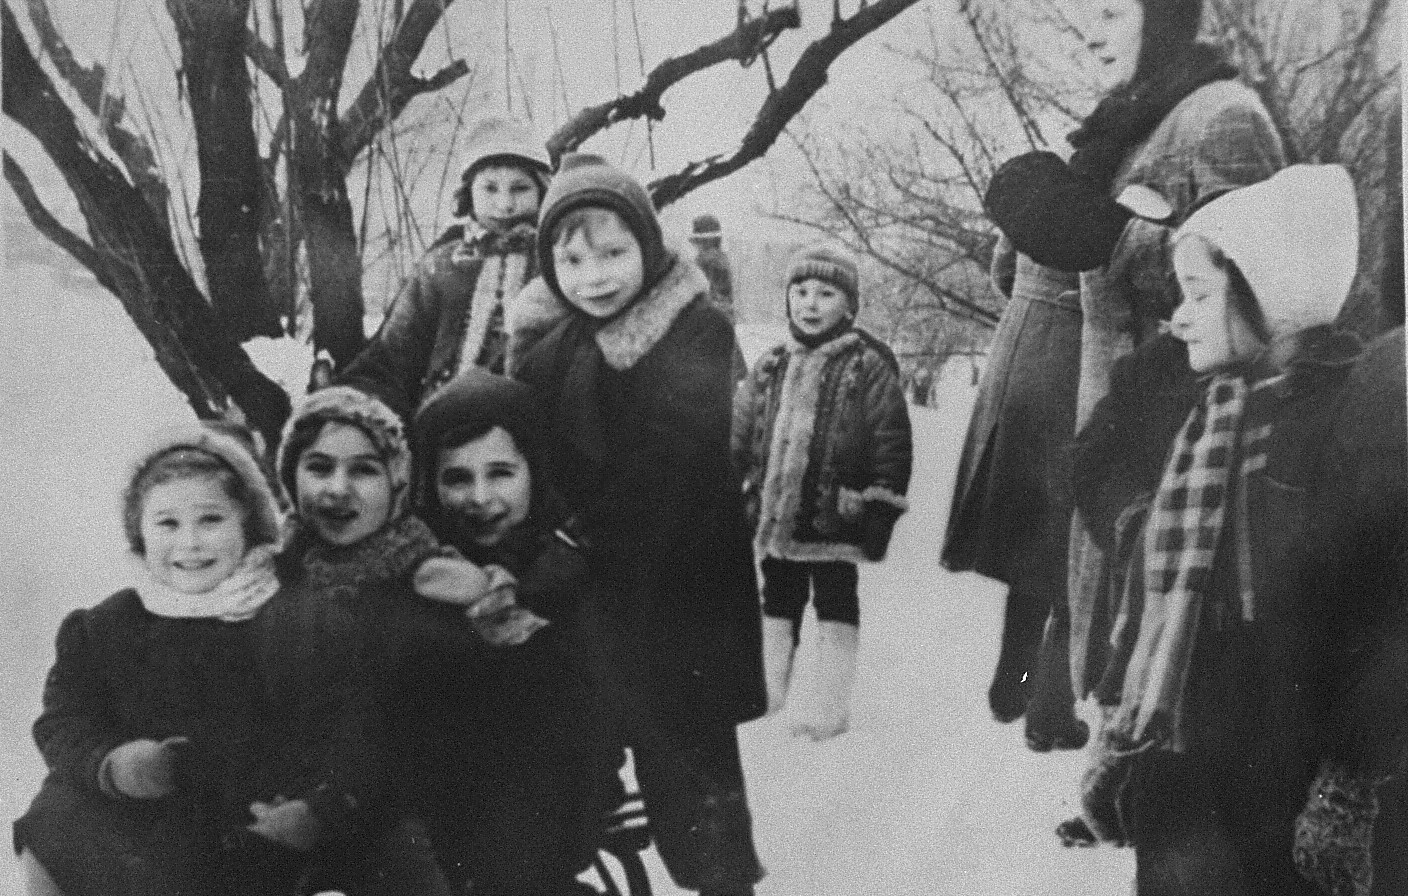 A little Jewish girl living in hiding in Warsaw, goes sledding with a group of Polish children.  Pictured at the far left is Rita Berkowicz, the donor's daughter.